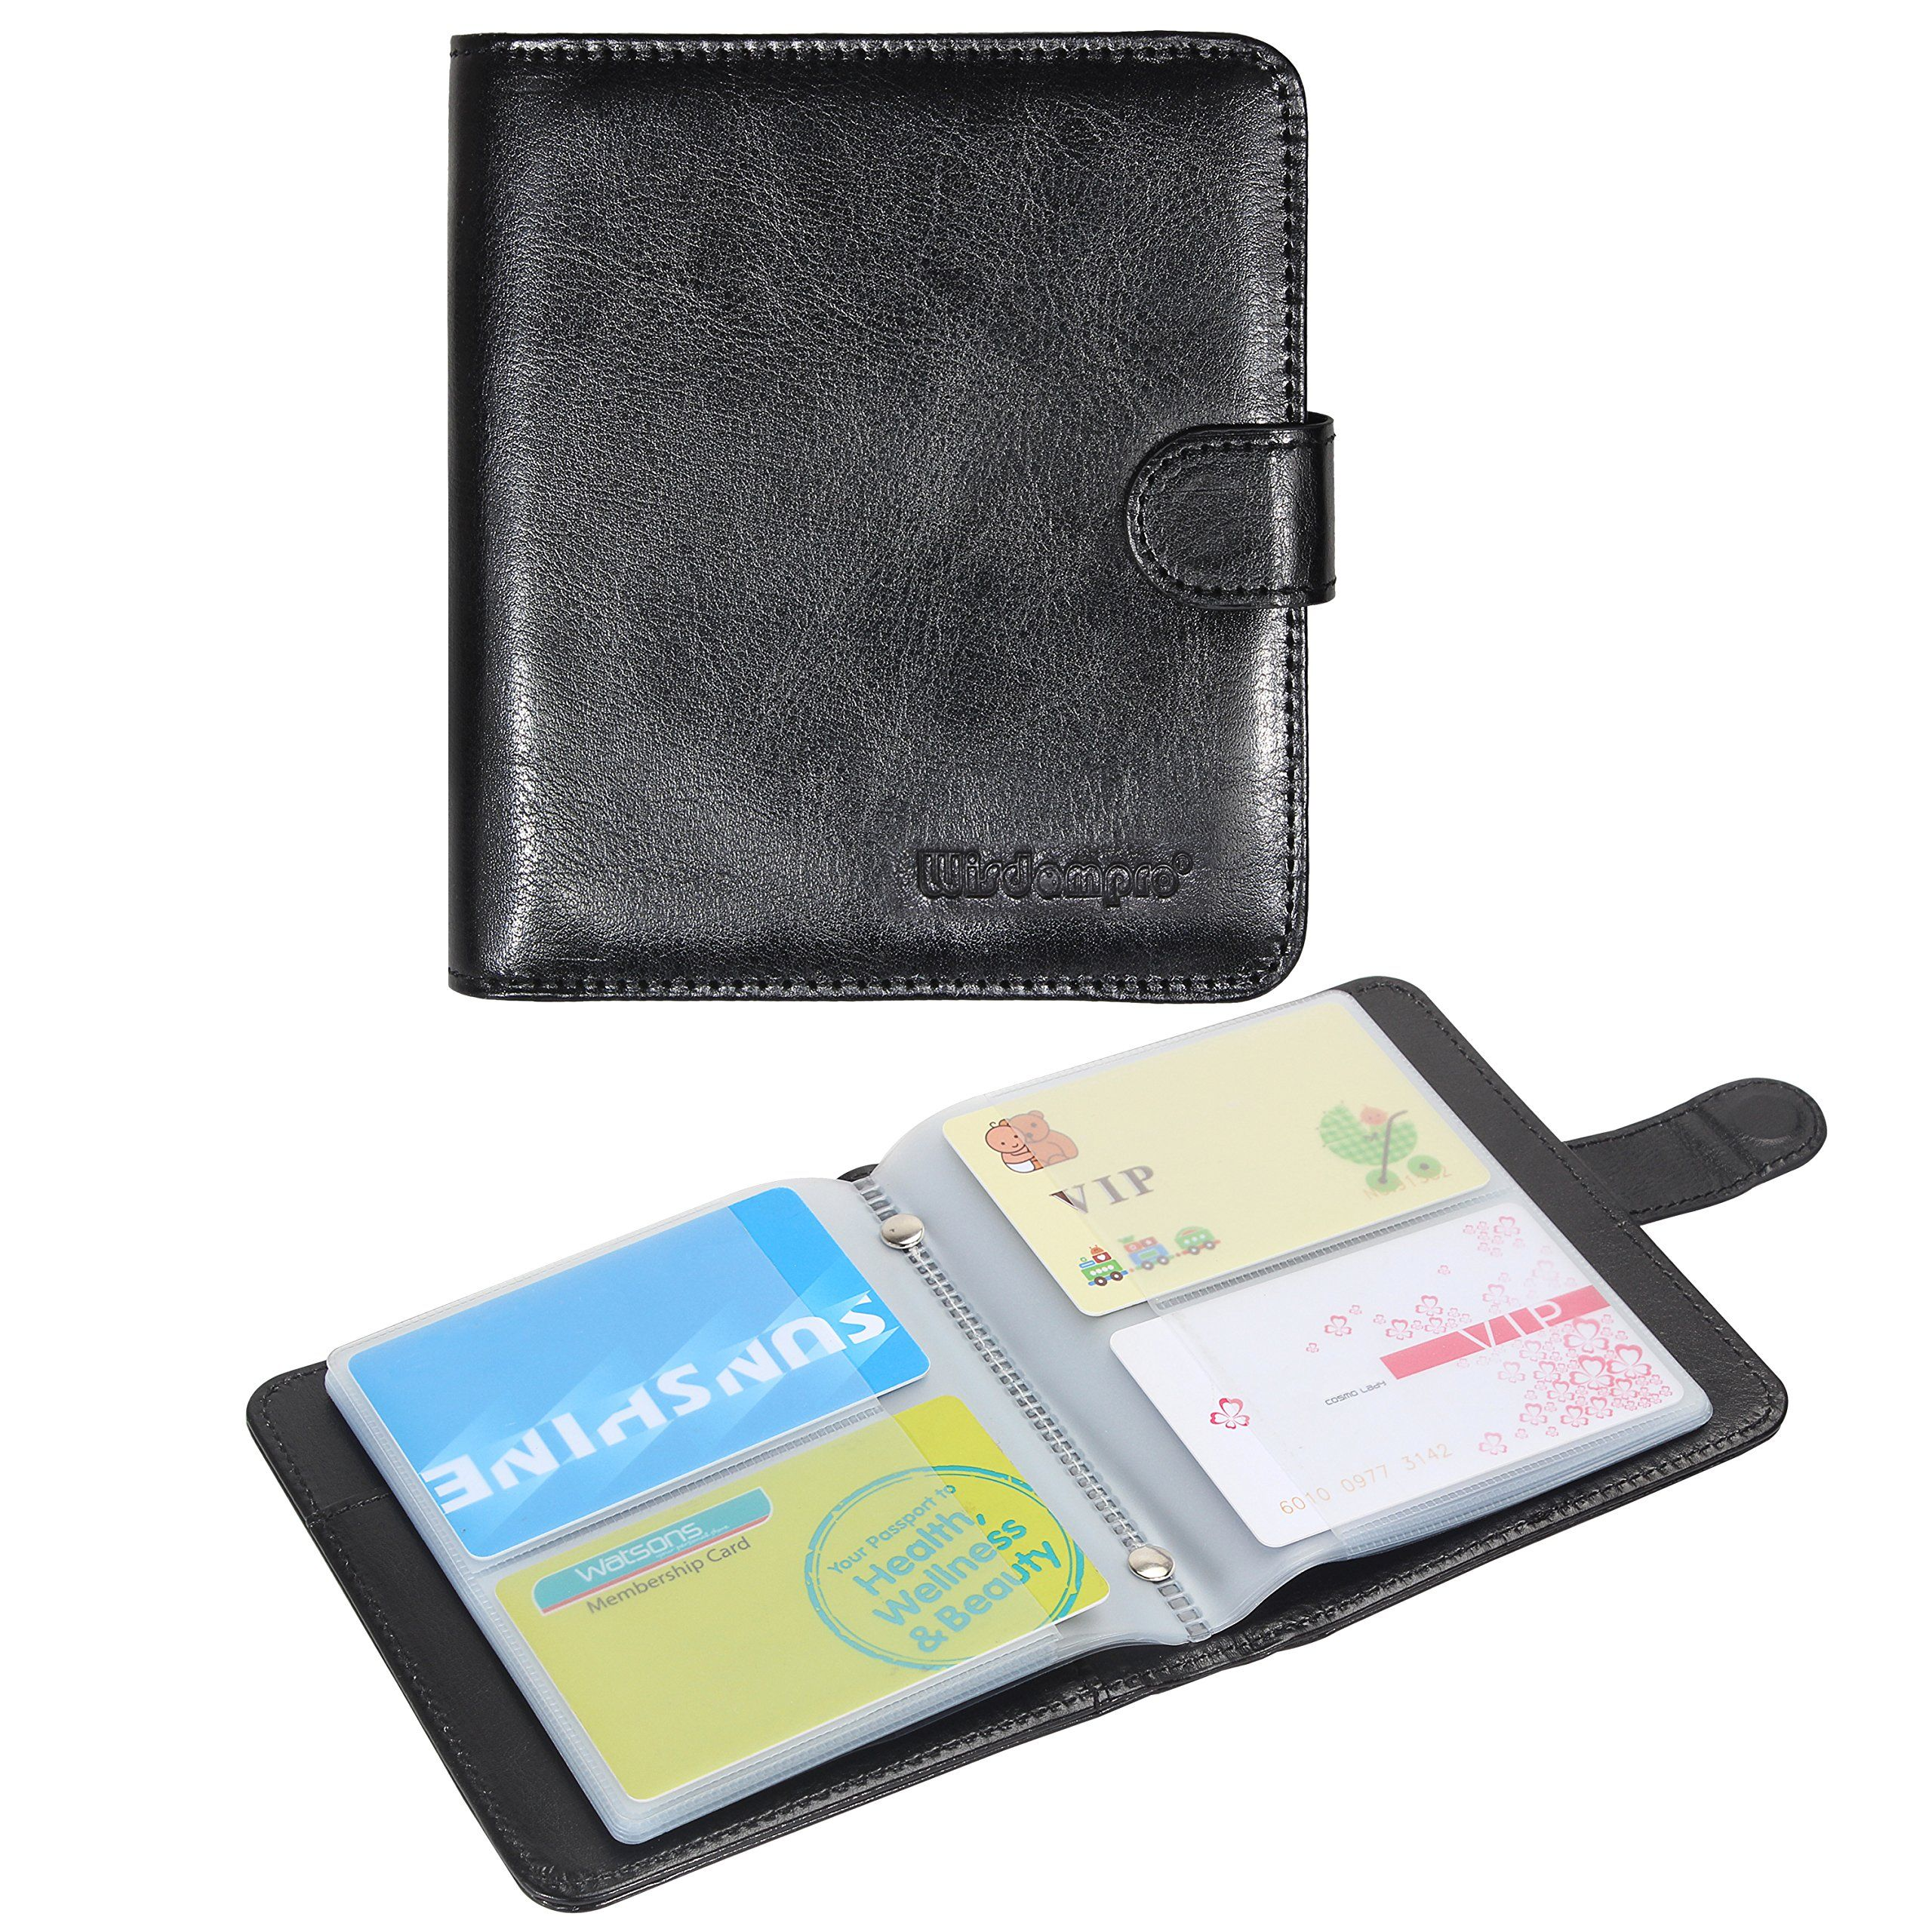 Business card book organizer wisdompro premium pu leather wallet business card book organizer wisdompro premium pu leather wallet name credit id card holder case with magnetic shut for 128 business cards build in 64 colourmoves